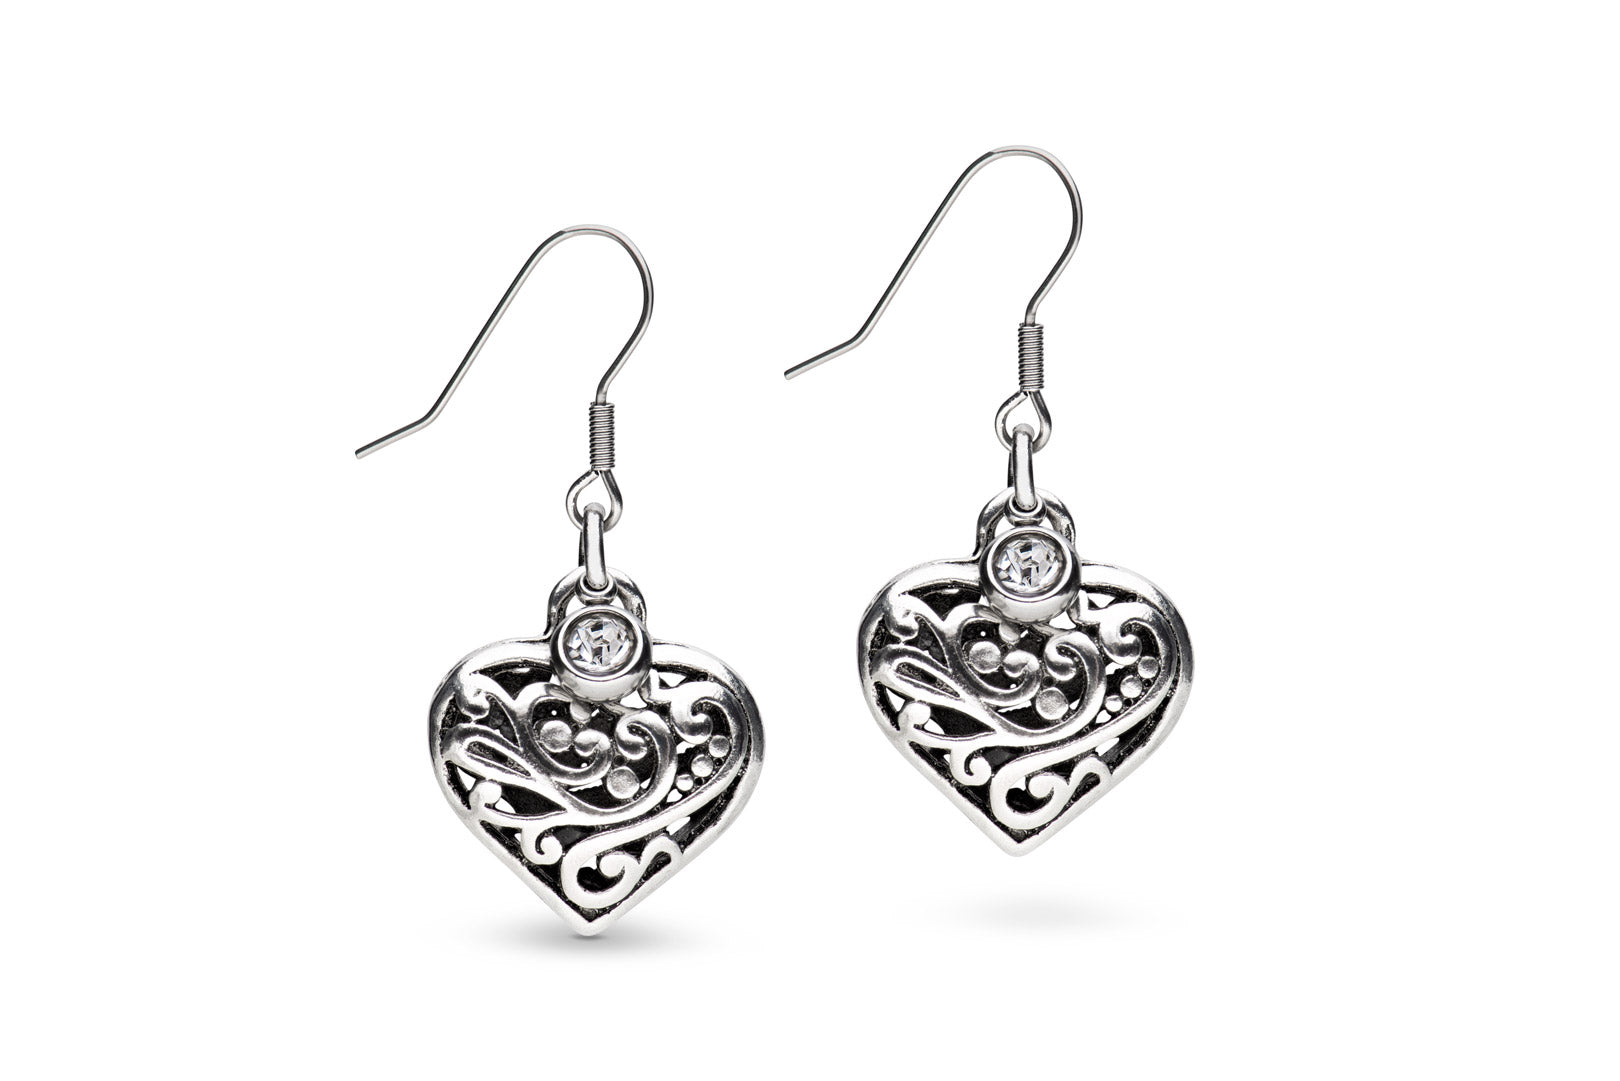 Ornate pewter heart earrings